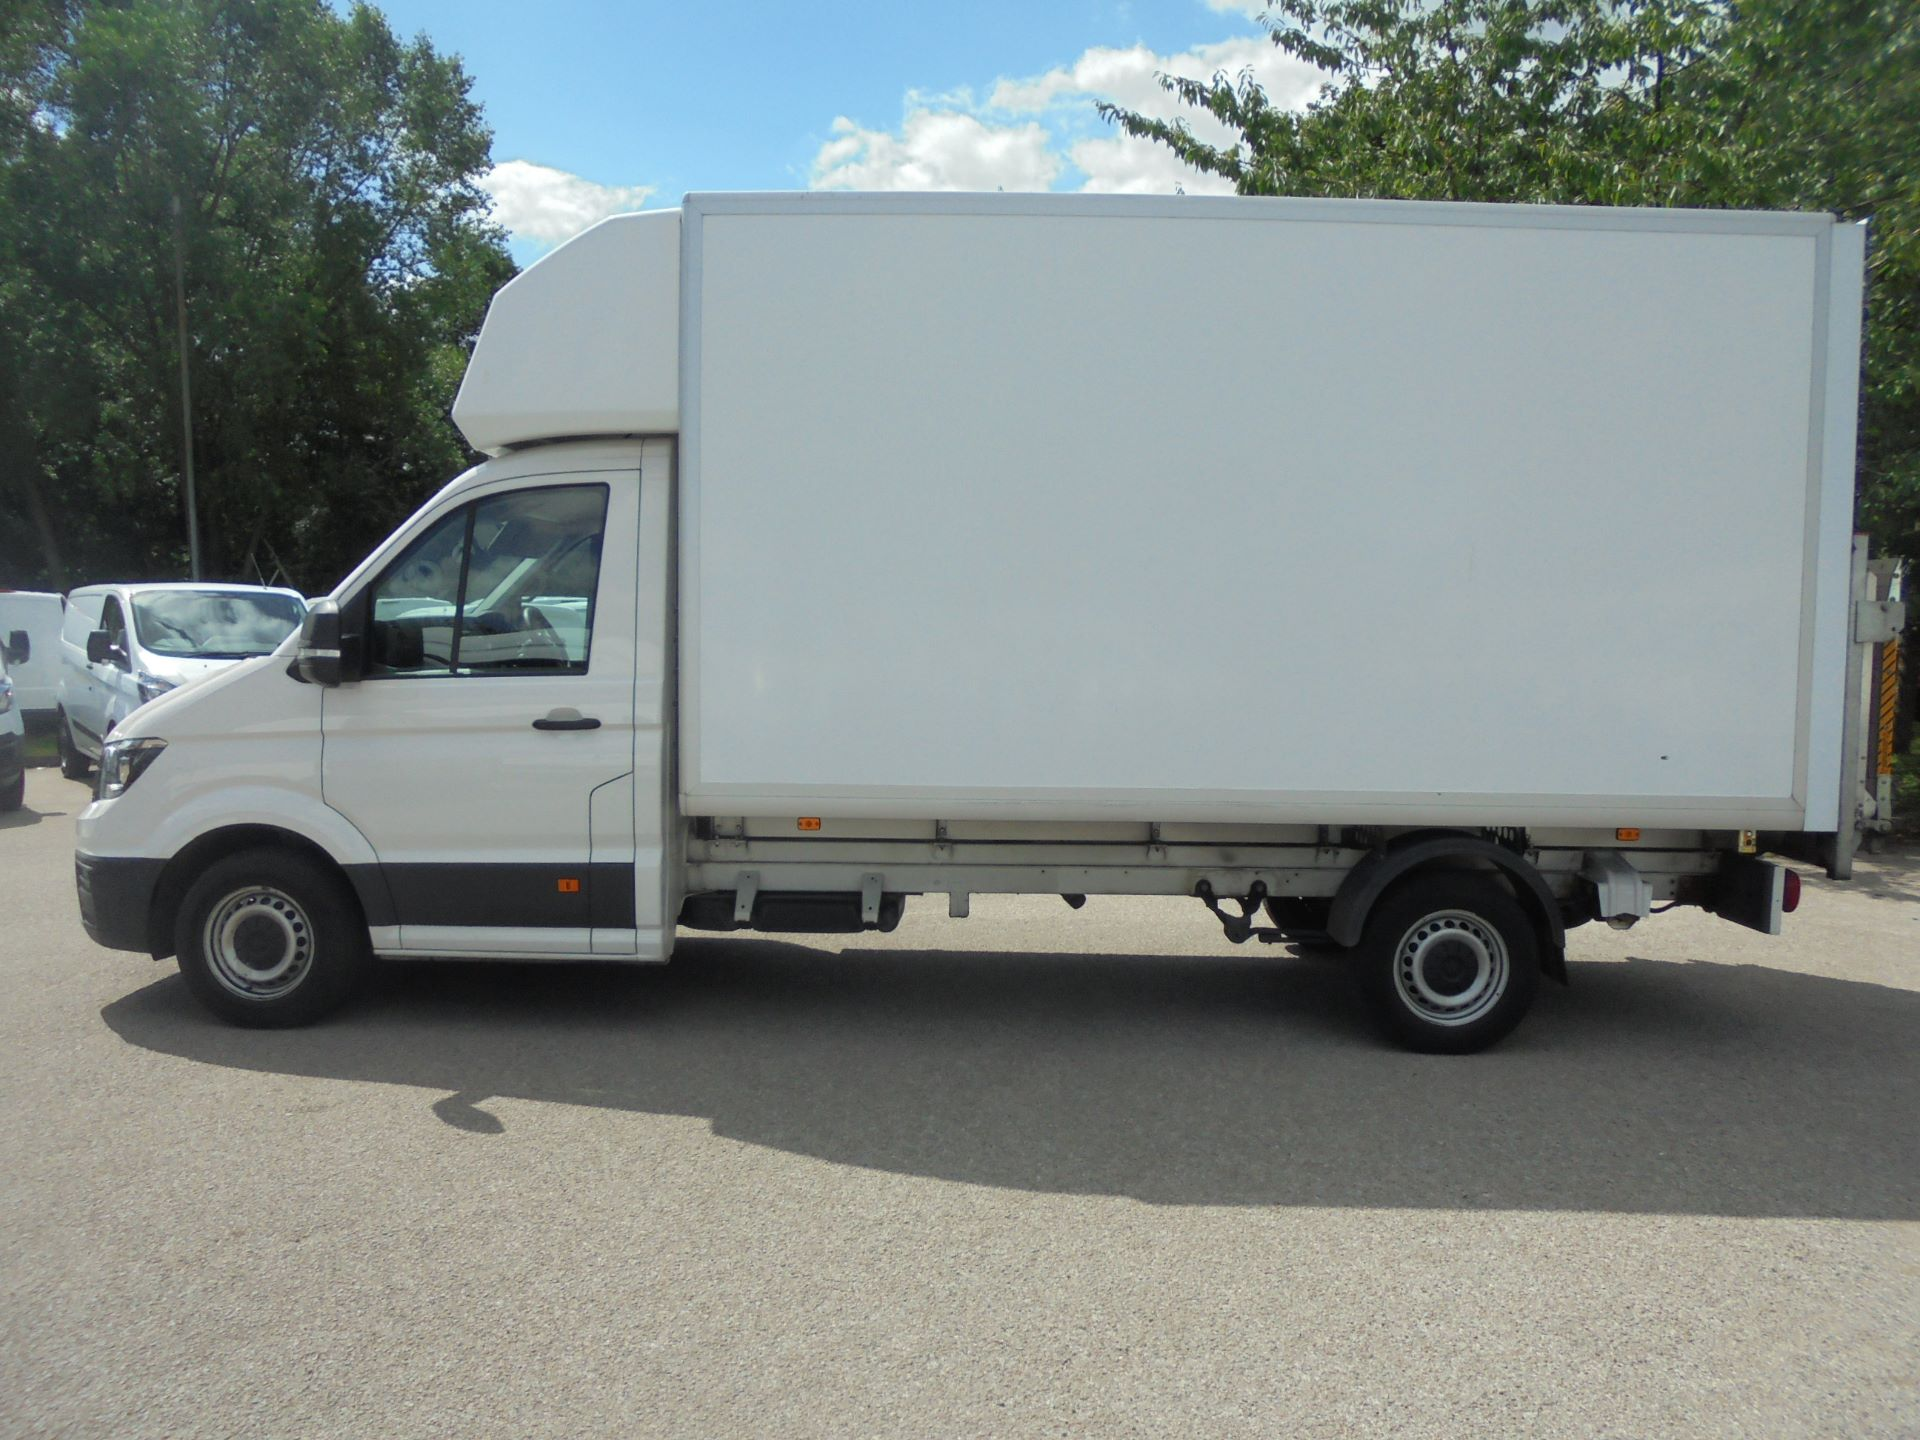 2018 Volkswagen Crafter 2.0 Tdi 140Ps Startline Chassis Cab (DT18LNZ) Thumbnail 4